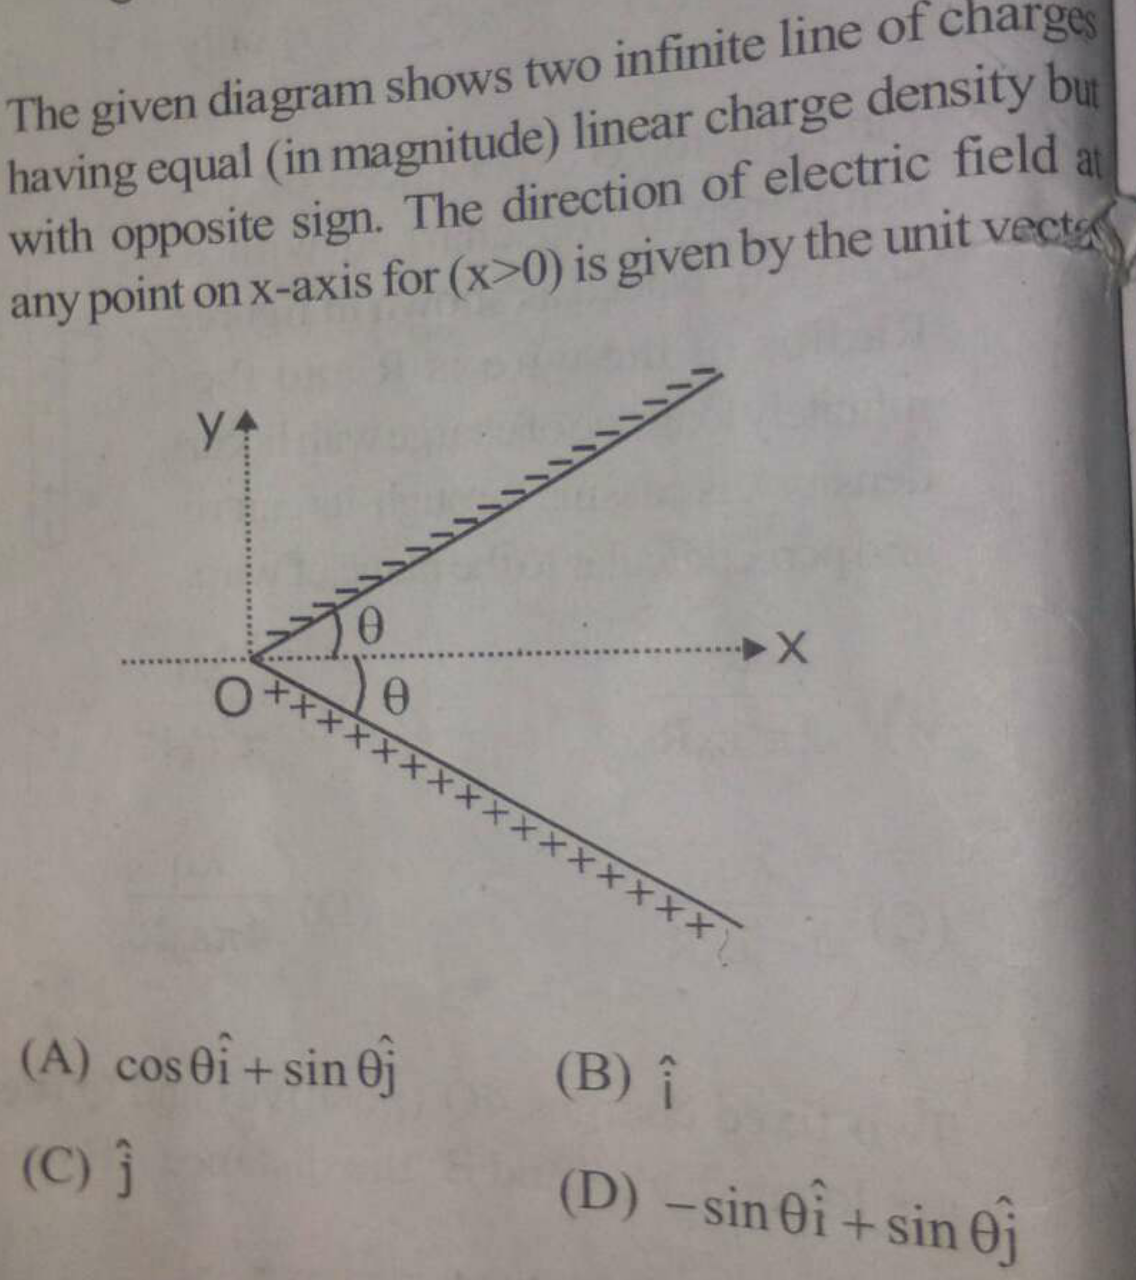 The given diagram shows two infinite line of charges having equal (in magnitude) linear charge density but with opposite sign. The direction of electric field at any